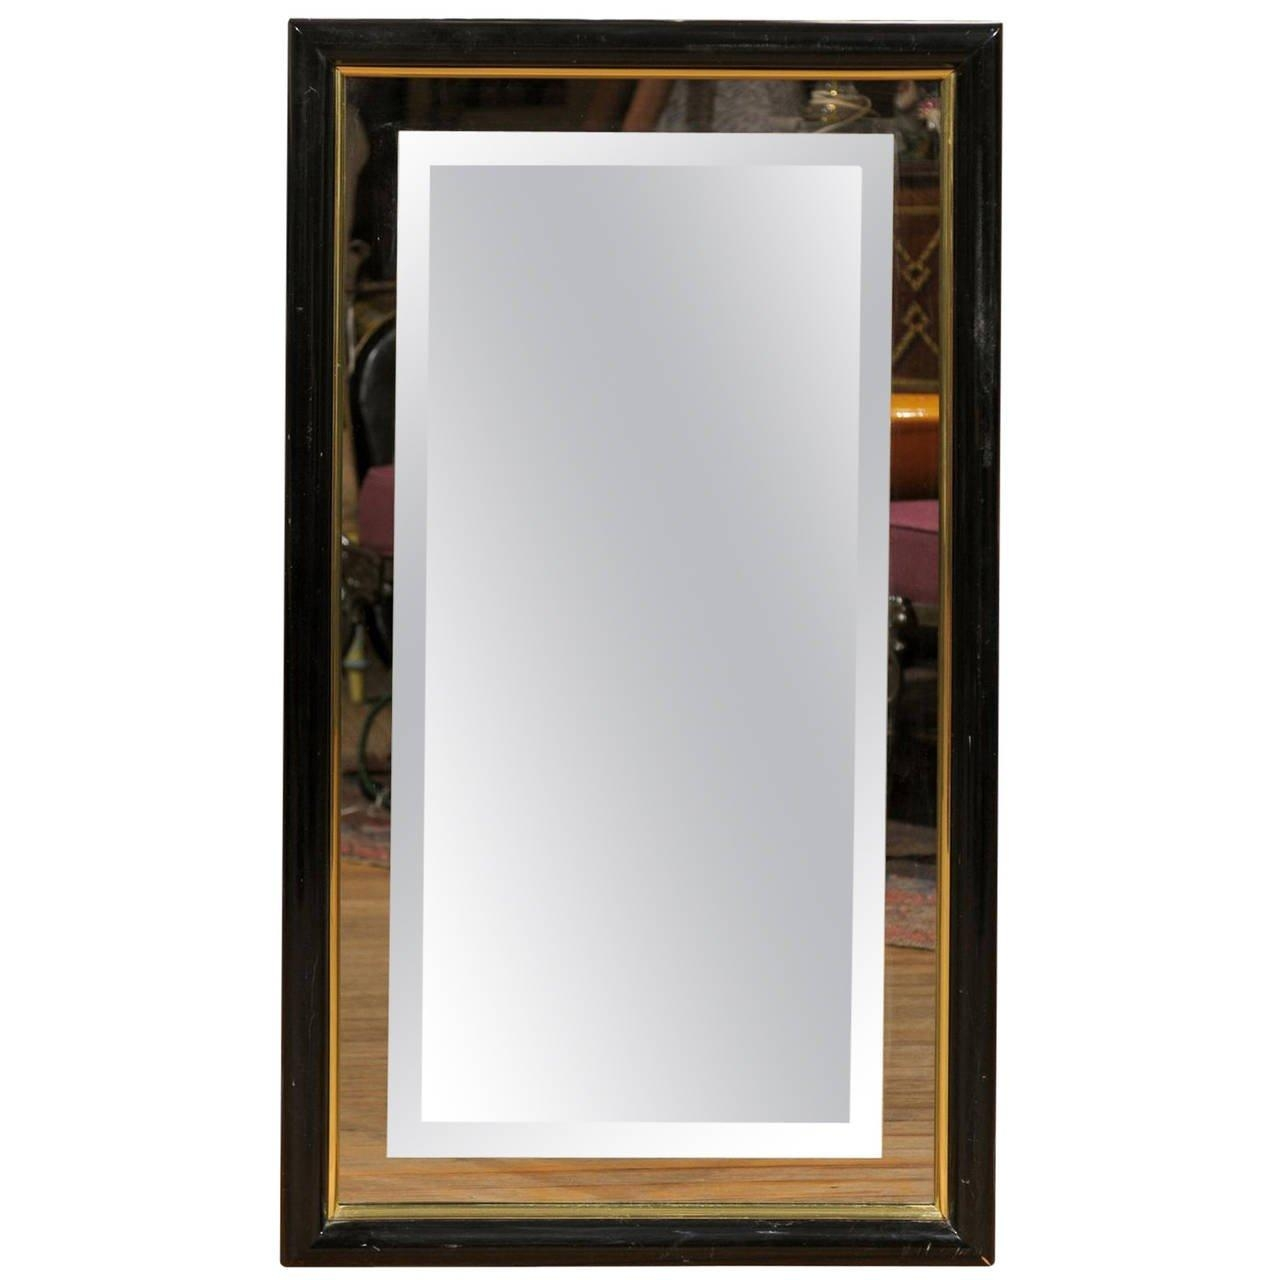 Smoked And Beveled Glass Wall Mirror In A Black And Brass Frame Regarding Black Wall Mirrors For Sale (Image 17 of 20)